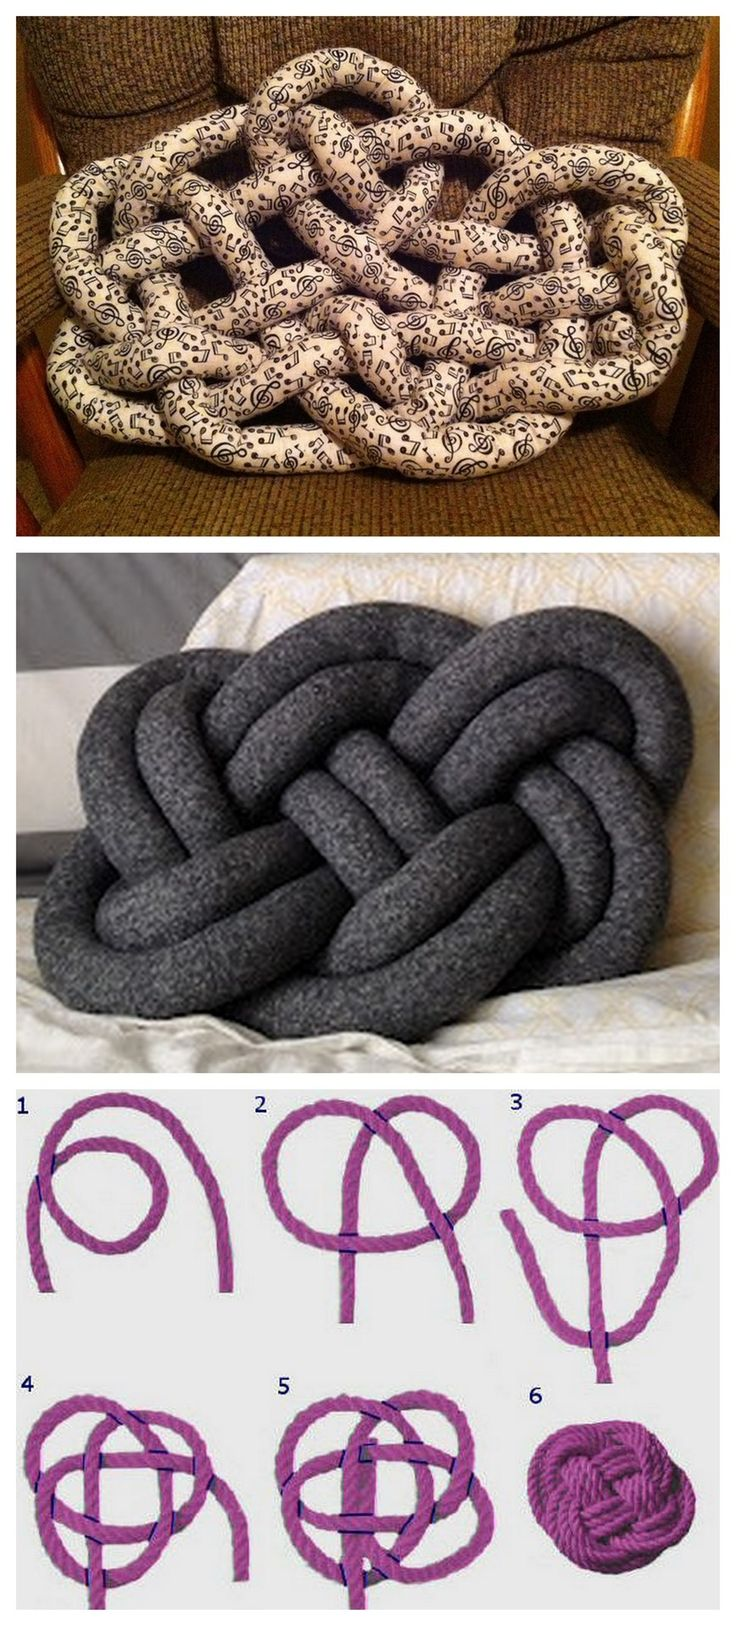 DIY Celtic Knot Pillow Tutorial from Cut Out +...